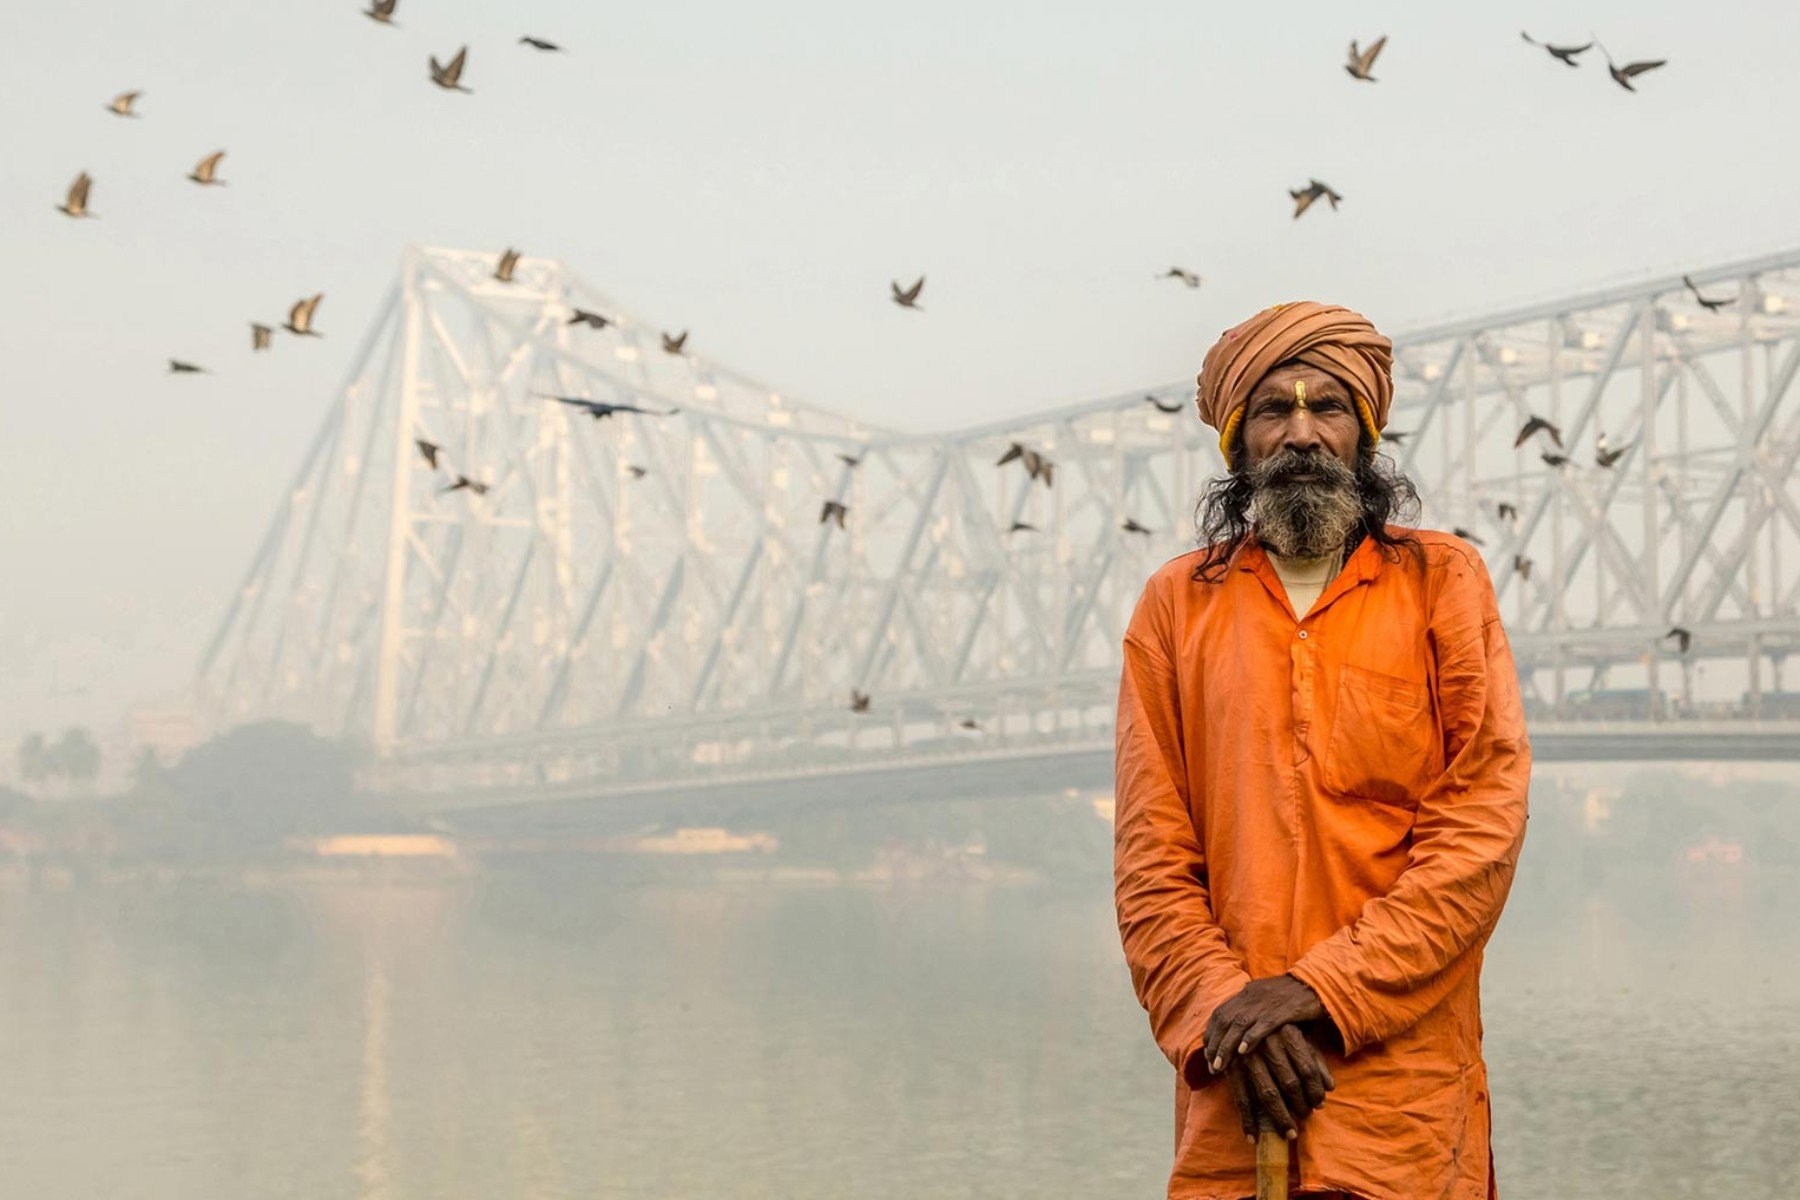 People Portrait photograph man with orange clothes standing before bridge